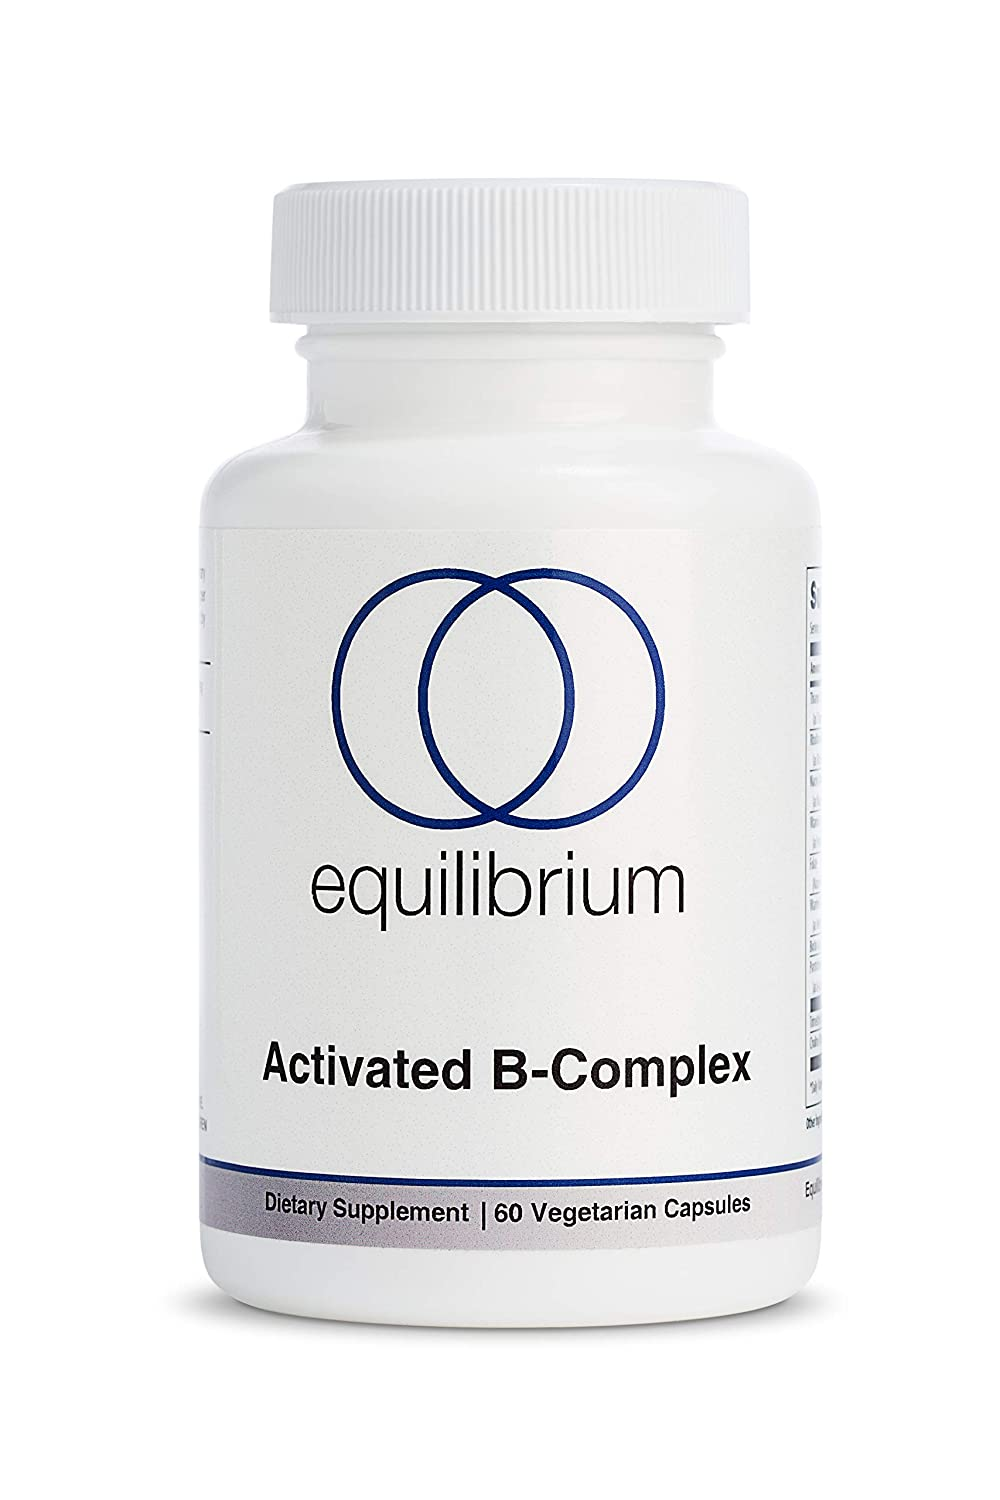 Activated B-Complex with MethylFolate Blend, Containing Active Vitamins to Aid in Energy Production, Nervous System Health, Mood Support, Optimizes Metabolism